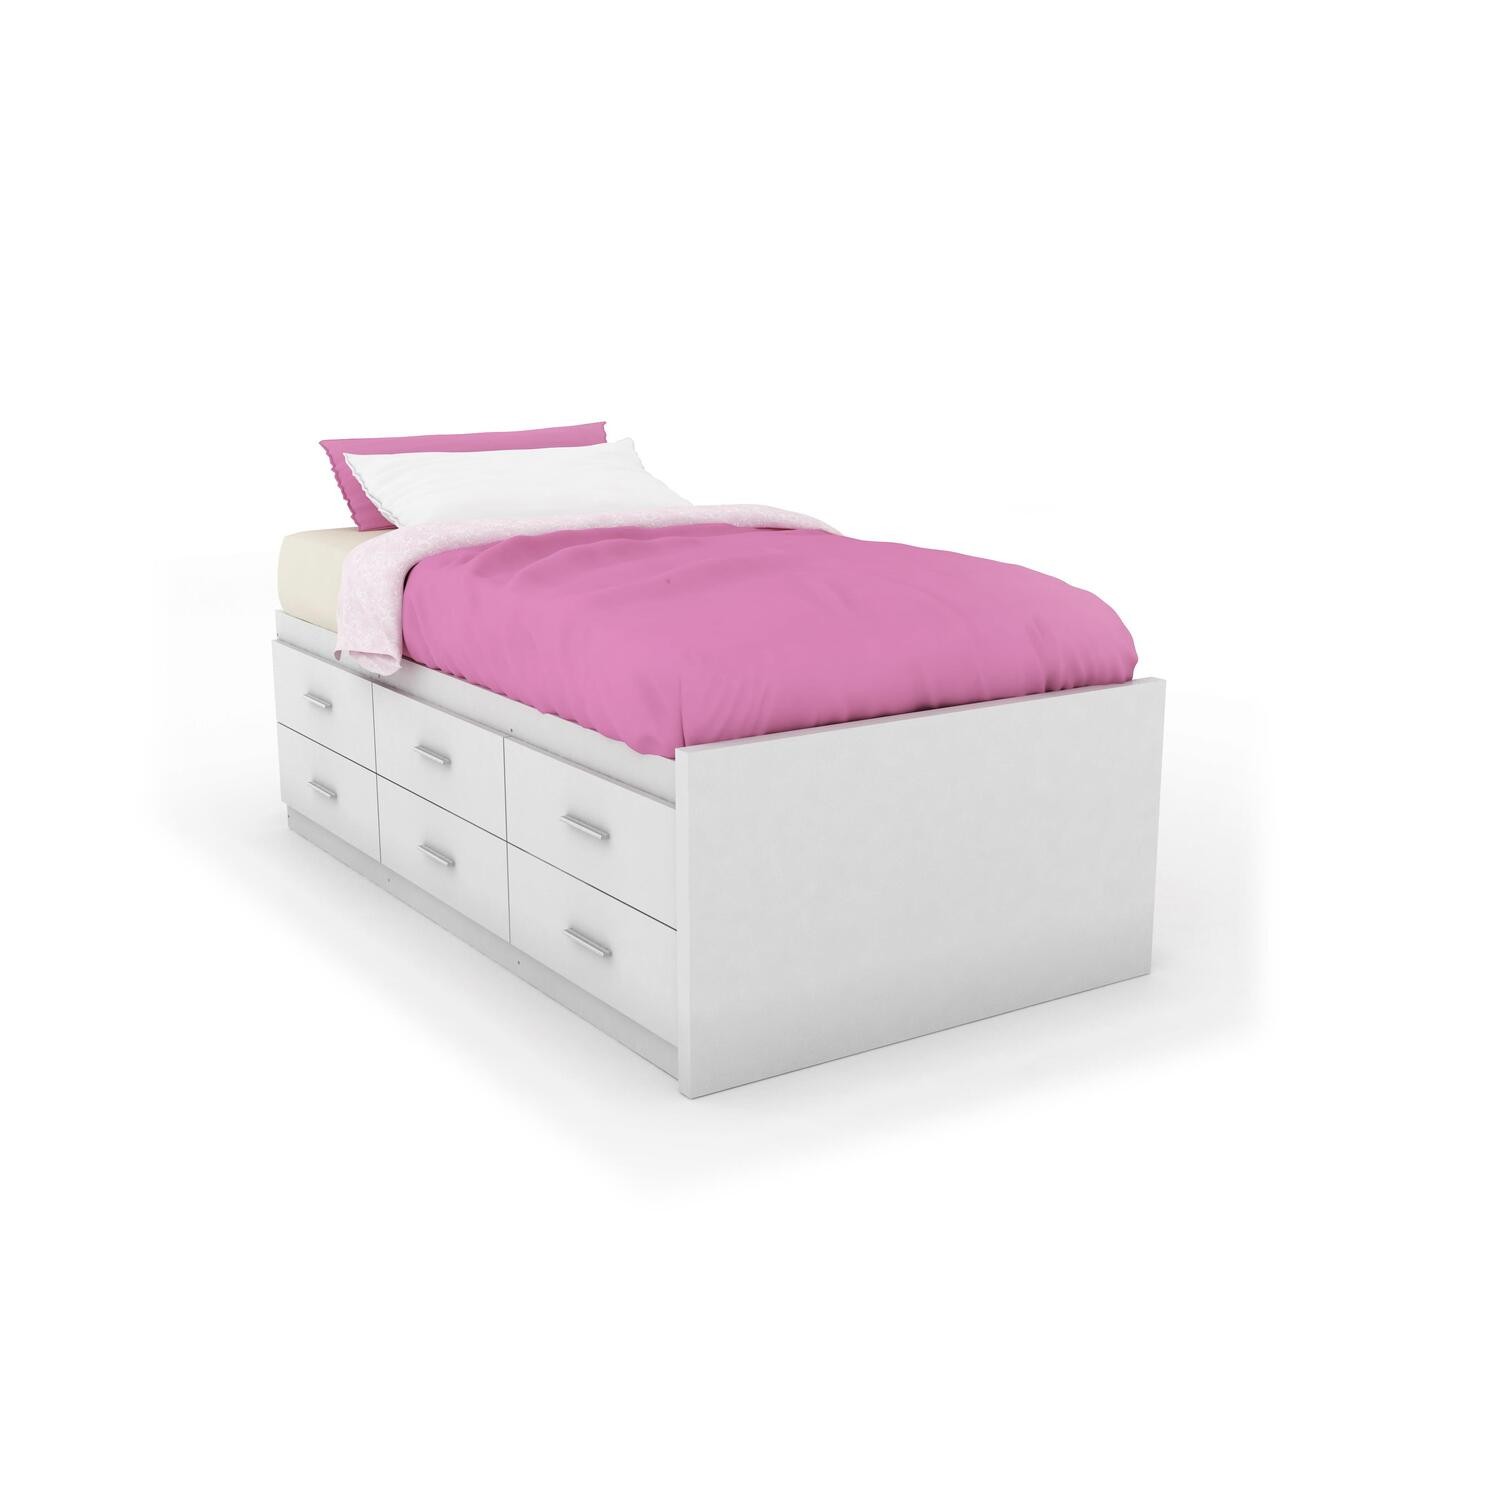 sonax sonax willow twin single captains storage bed with 6 drawers in frost white by oj. Black Bedroom Furniture Sets. Home Design Ideas